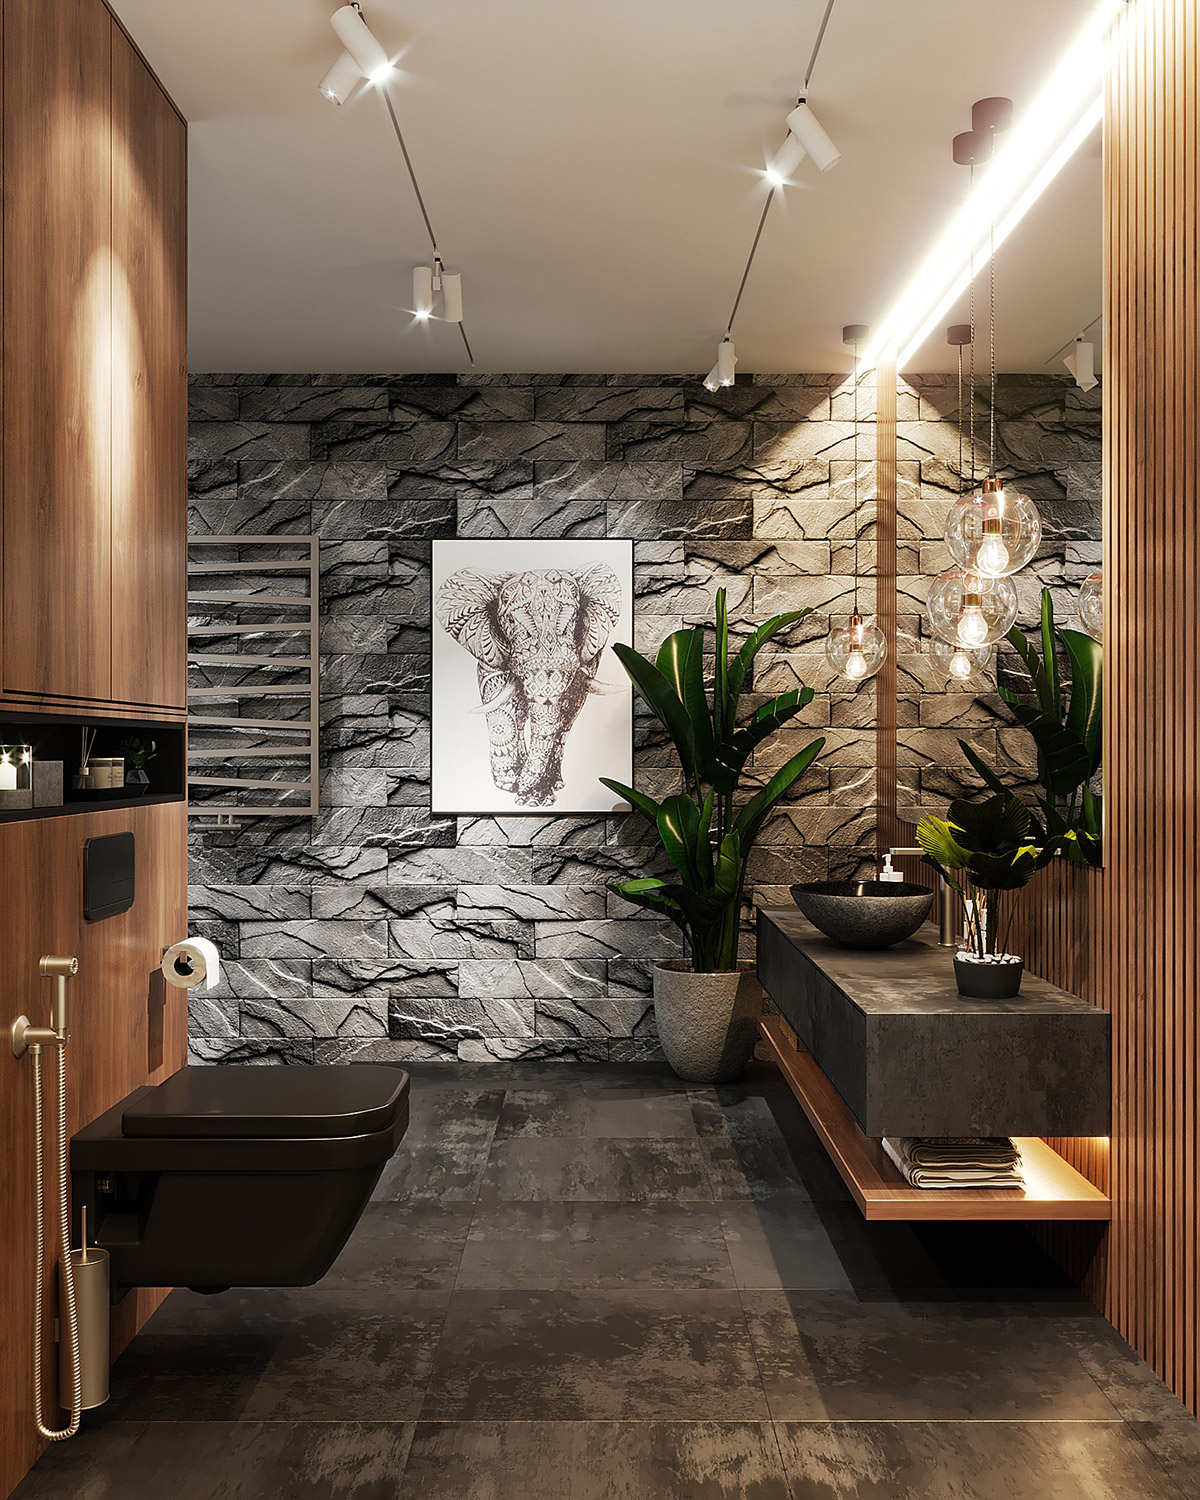 51 Master Bathrooms With Images Tips And Accessories To Help You Design Yours